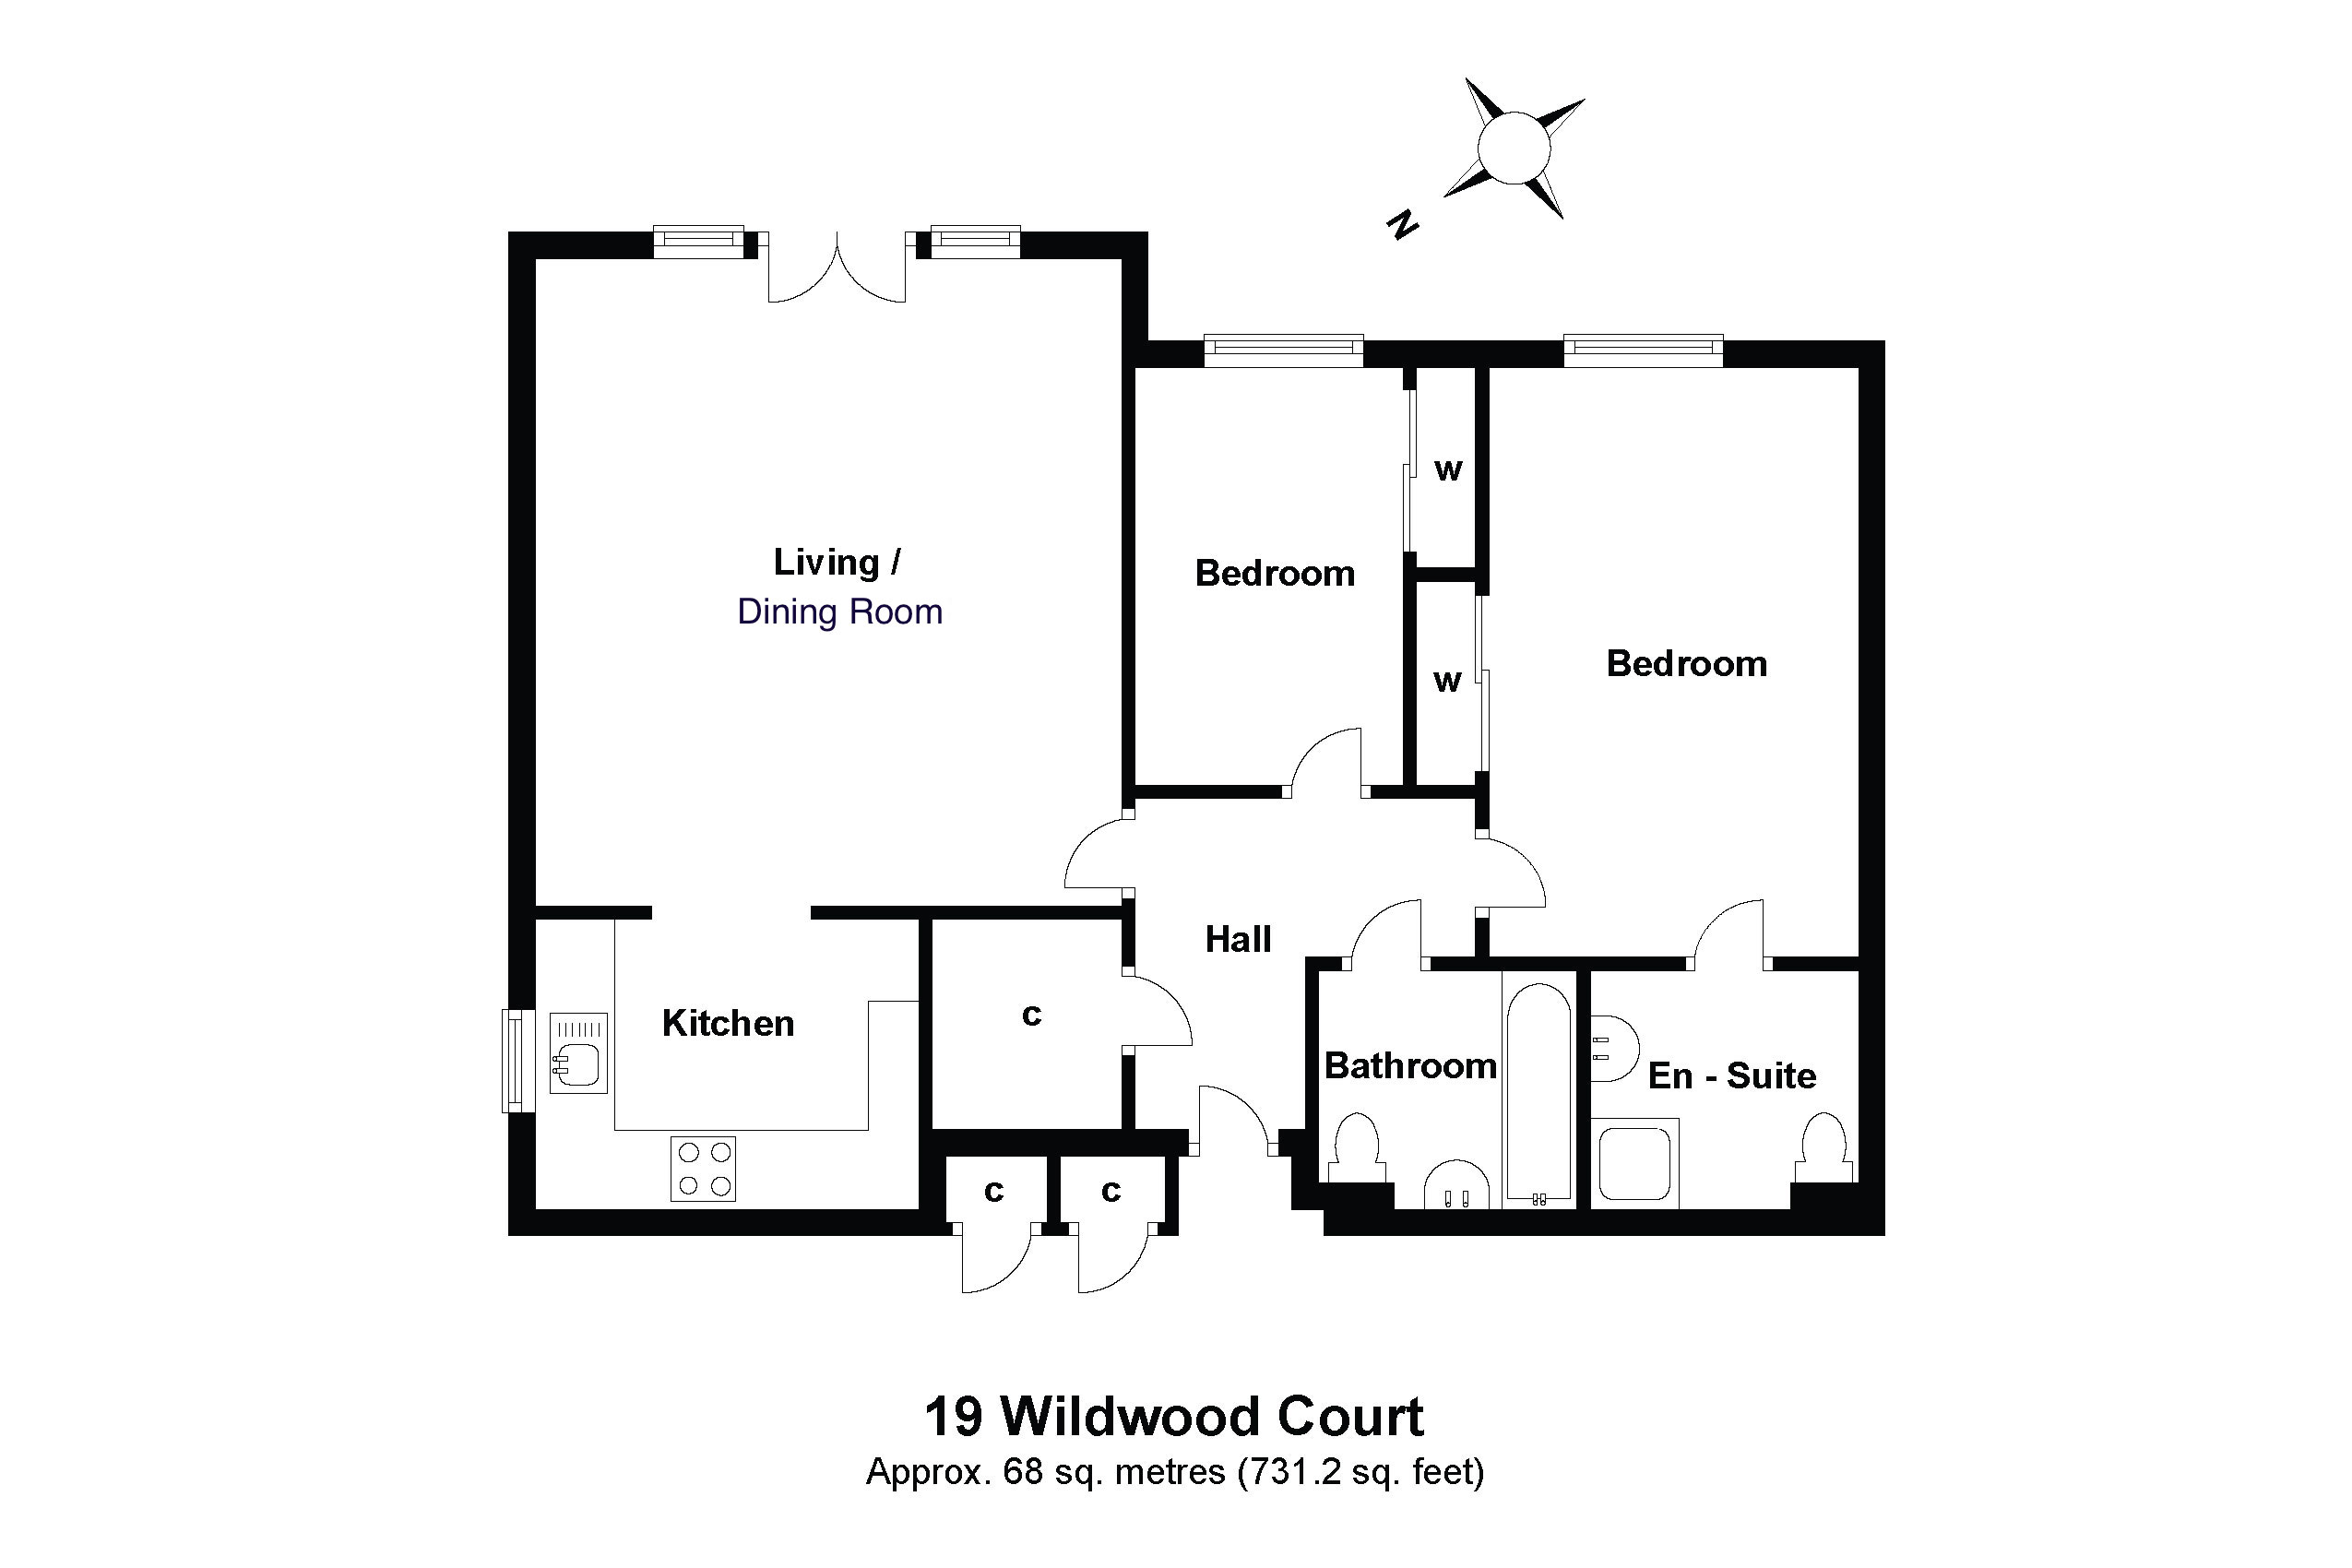 19 Wildwood Court Floorplan